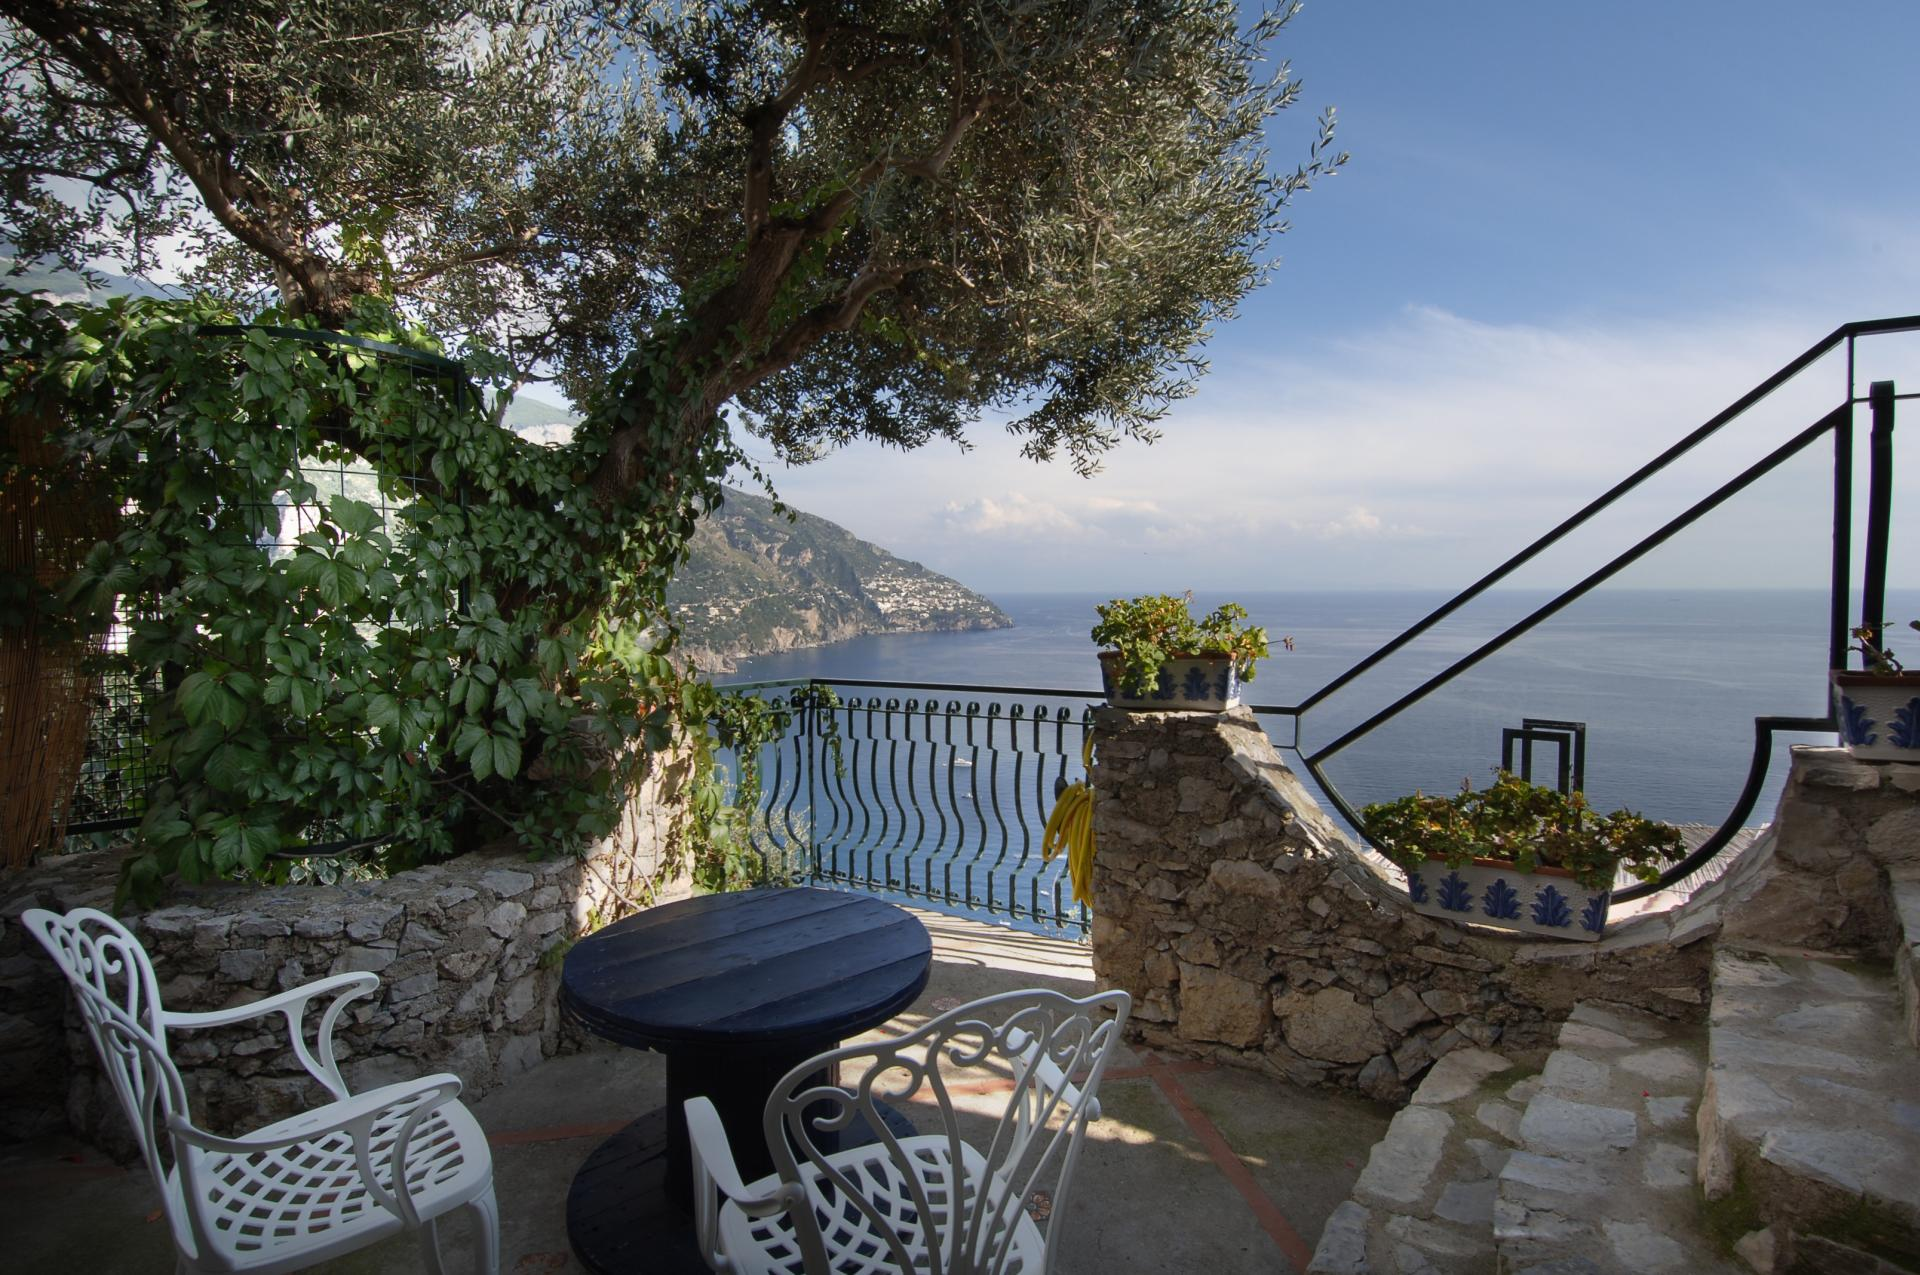 Outdoor Seating, Il Pellicano, Positano, Amalfi Coast Campania.